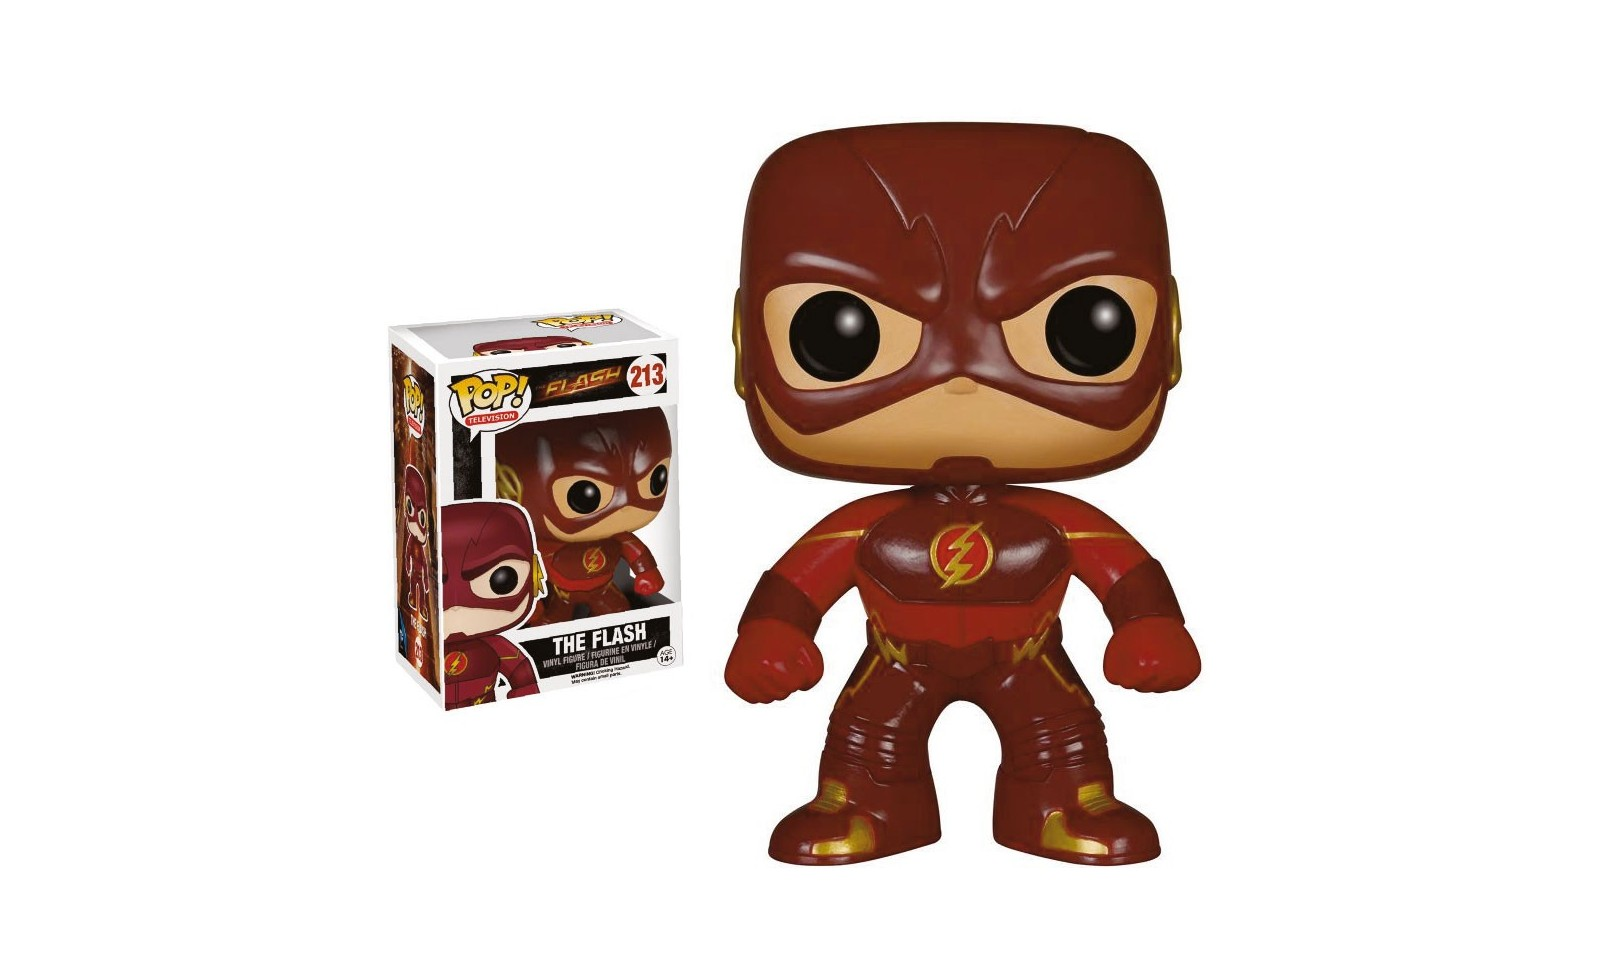 The Flash The Flash Pop Figure 9 Cm Tv Series